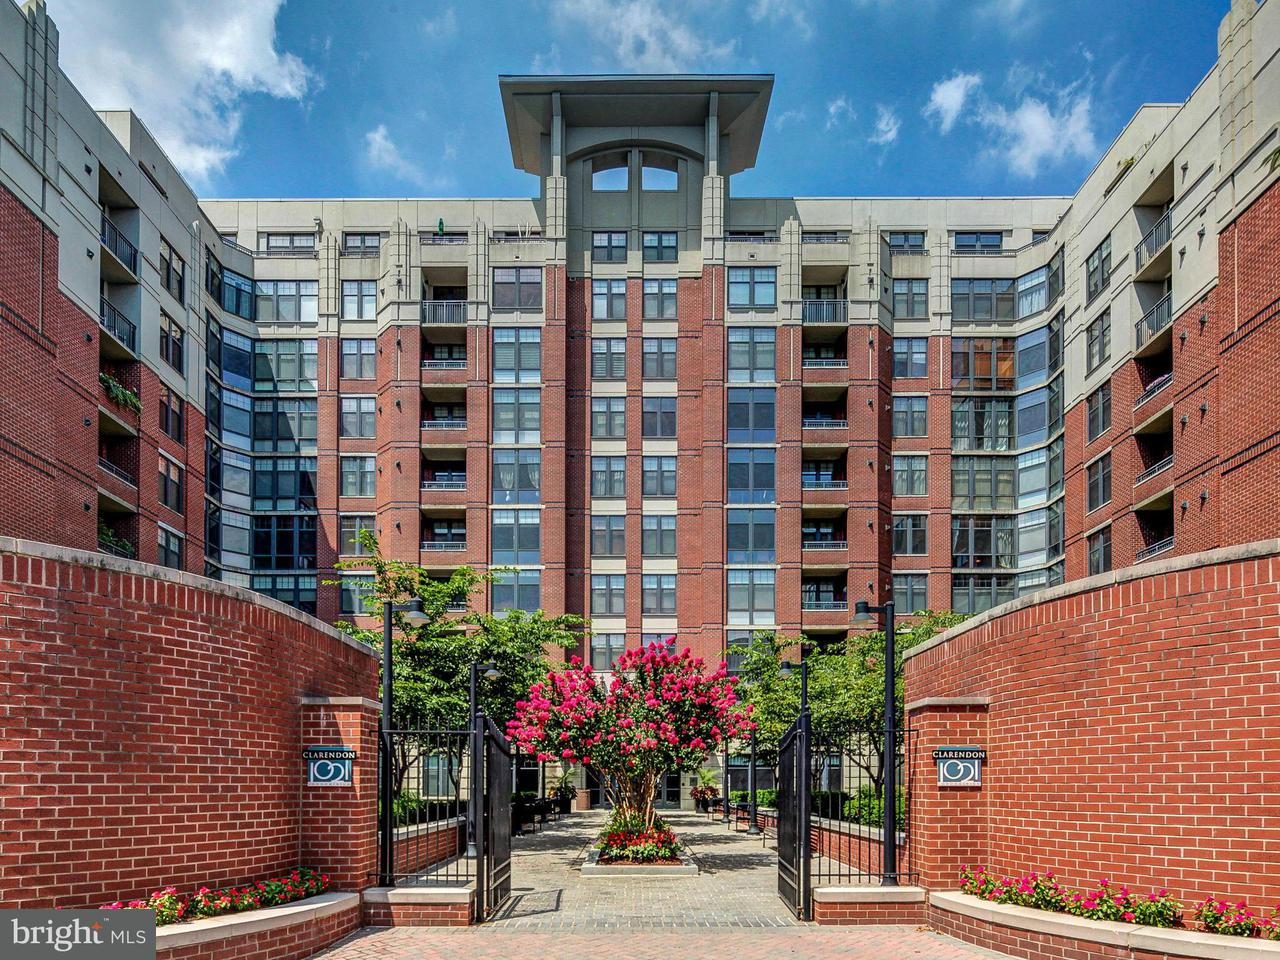 Townhouse for Sale at 1021 GARFIELD ST #405 1021 GARFIELD ST #405 Arlington, Virginia 22201 United States